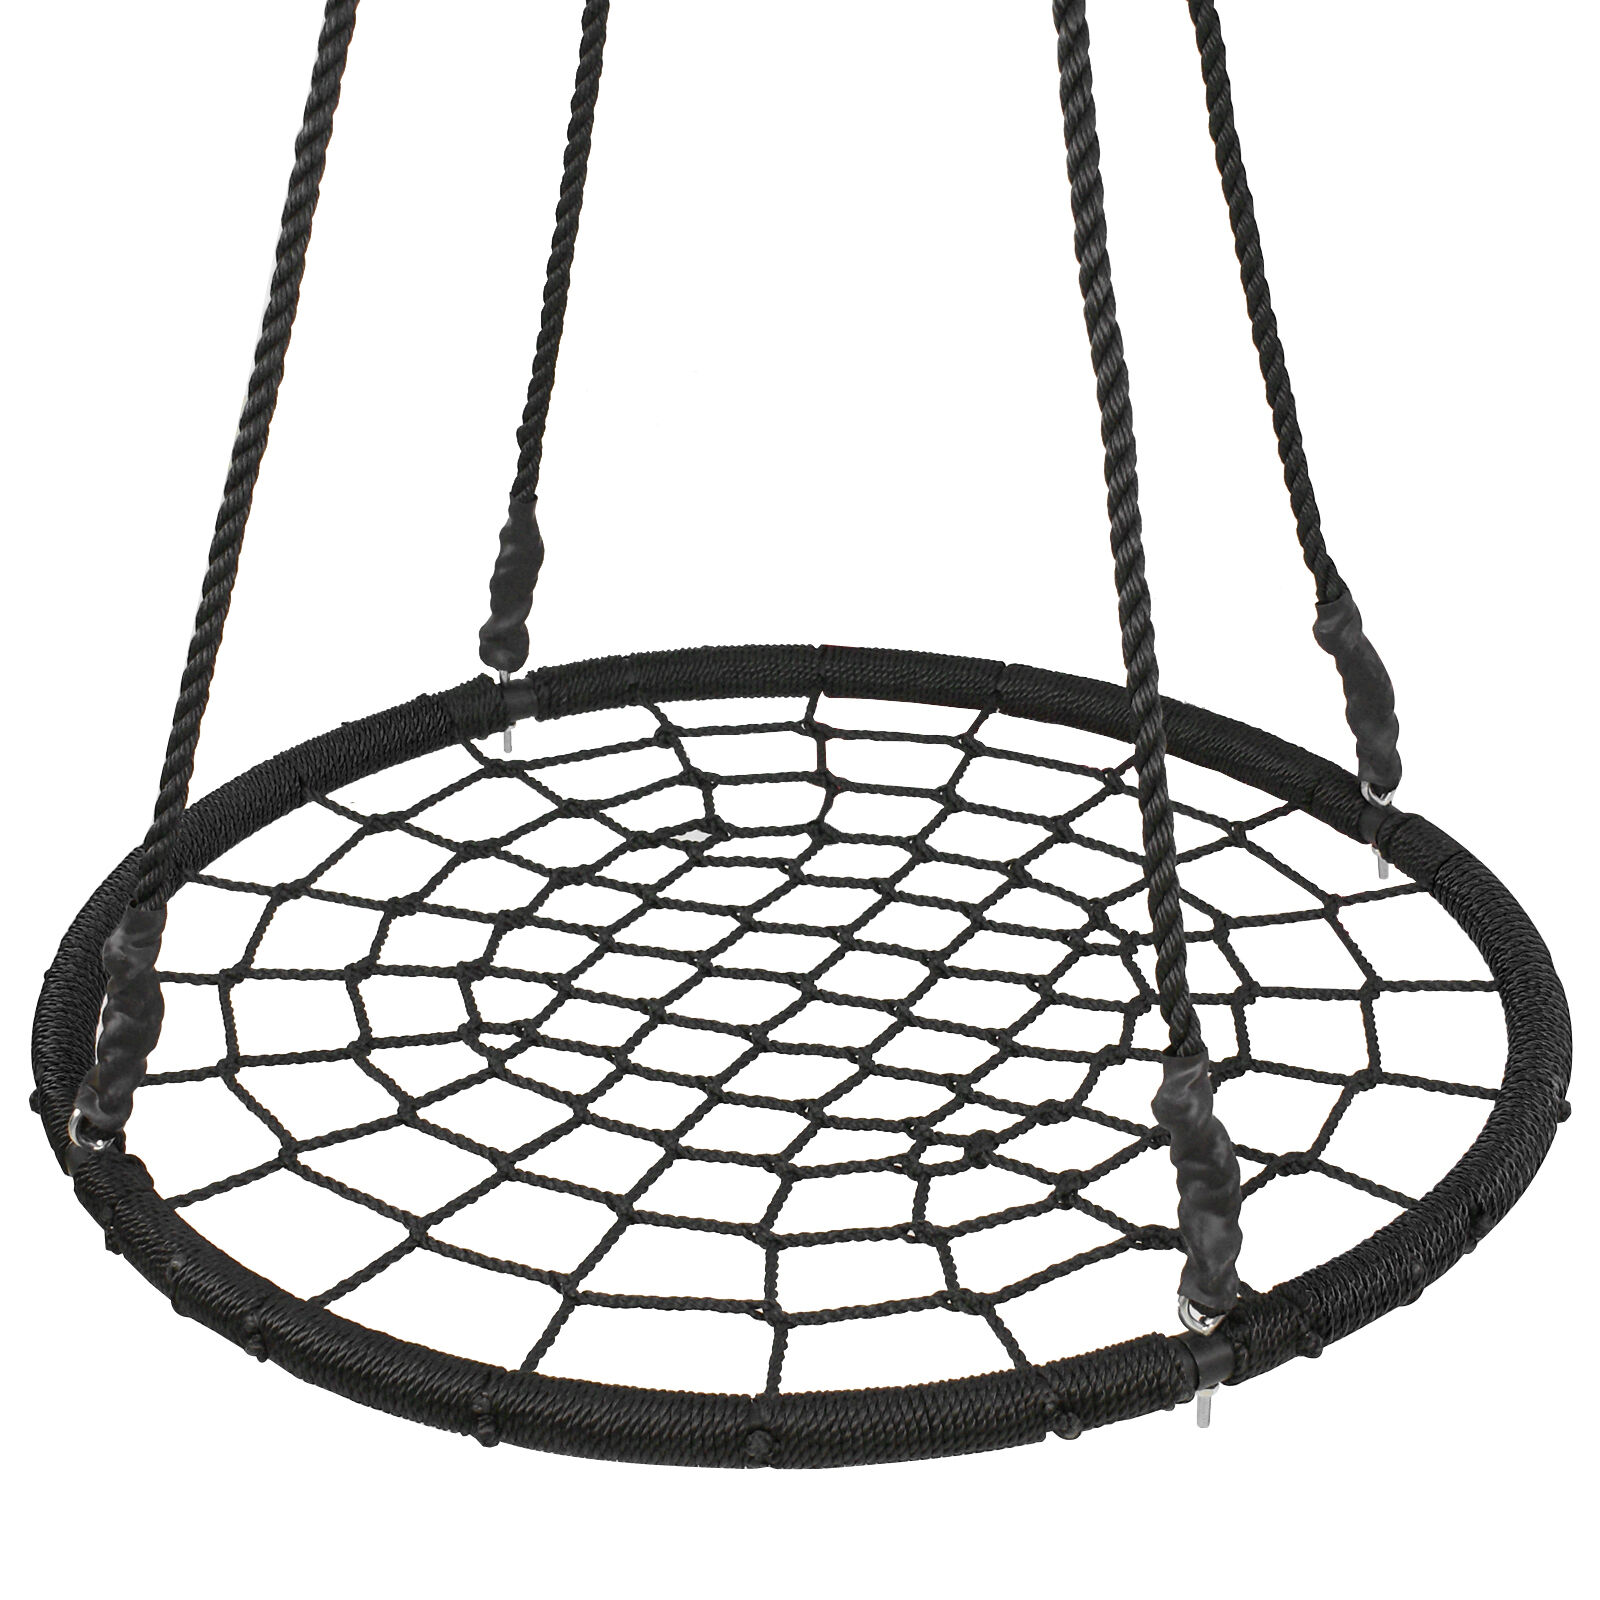 Web Tree Net Swing Large 40″ Spider 100% Safe Nylon Rope Max 600 LBs EZ Setup Outdoor Toys & Structures